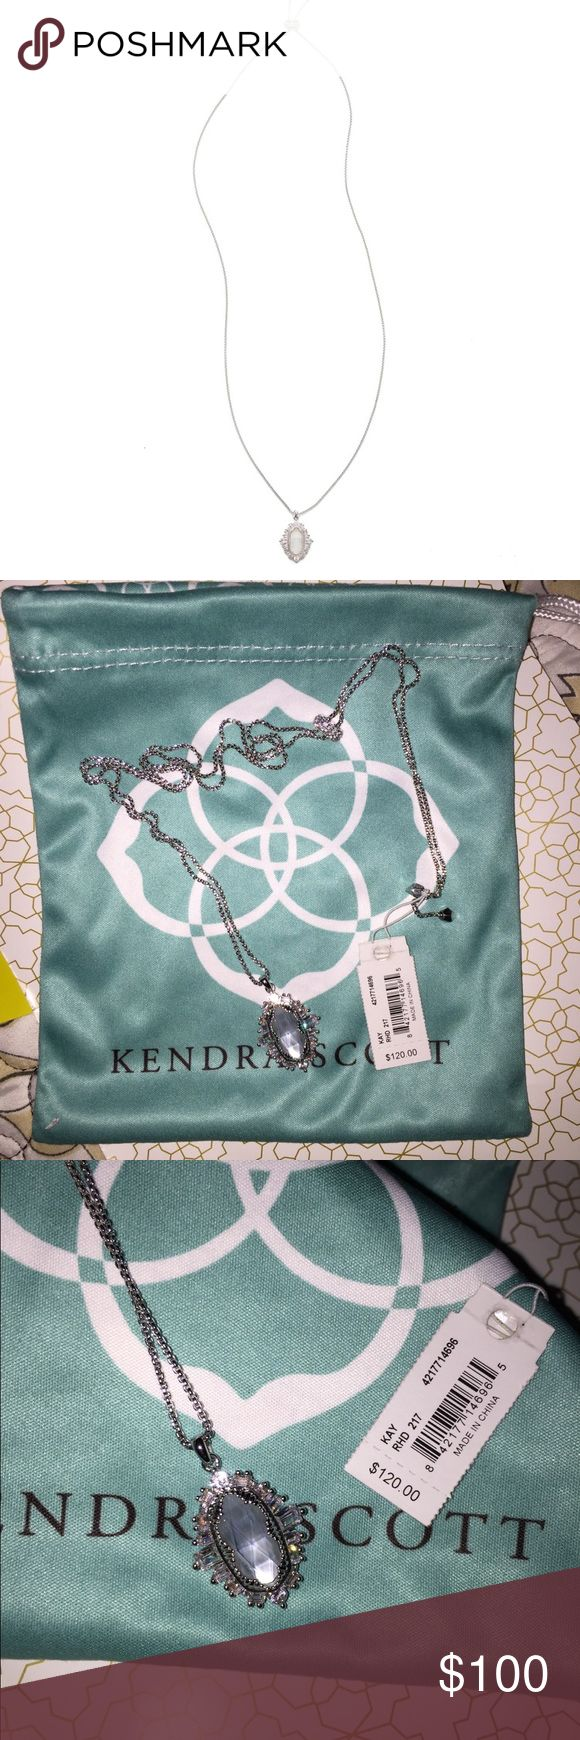 Kendra Scott Kay necklace Brand new beautiful Kendra Scott Kay necklace in silver Kendra Scott Jewelry Necklaces